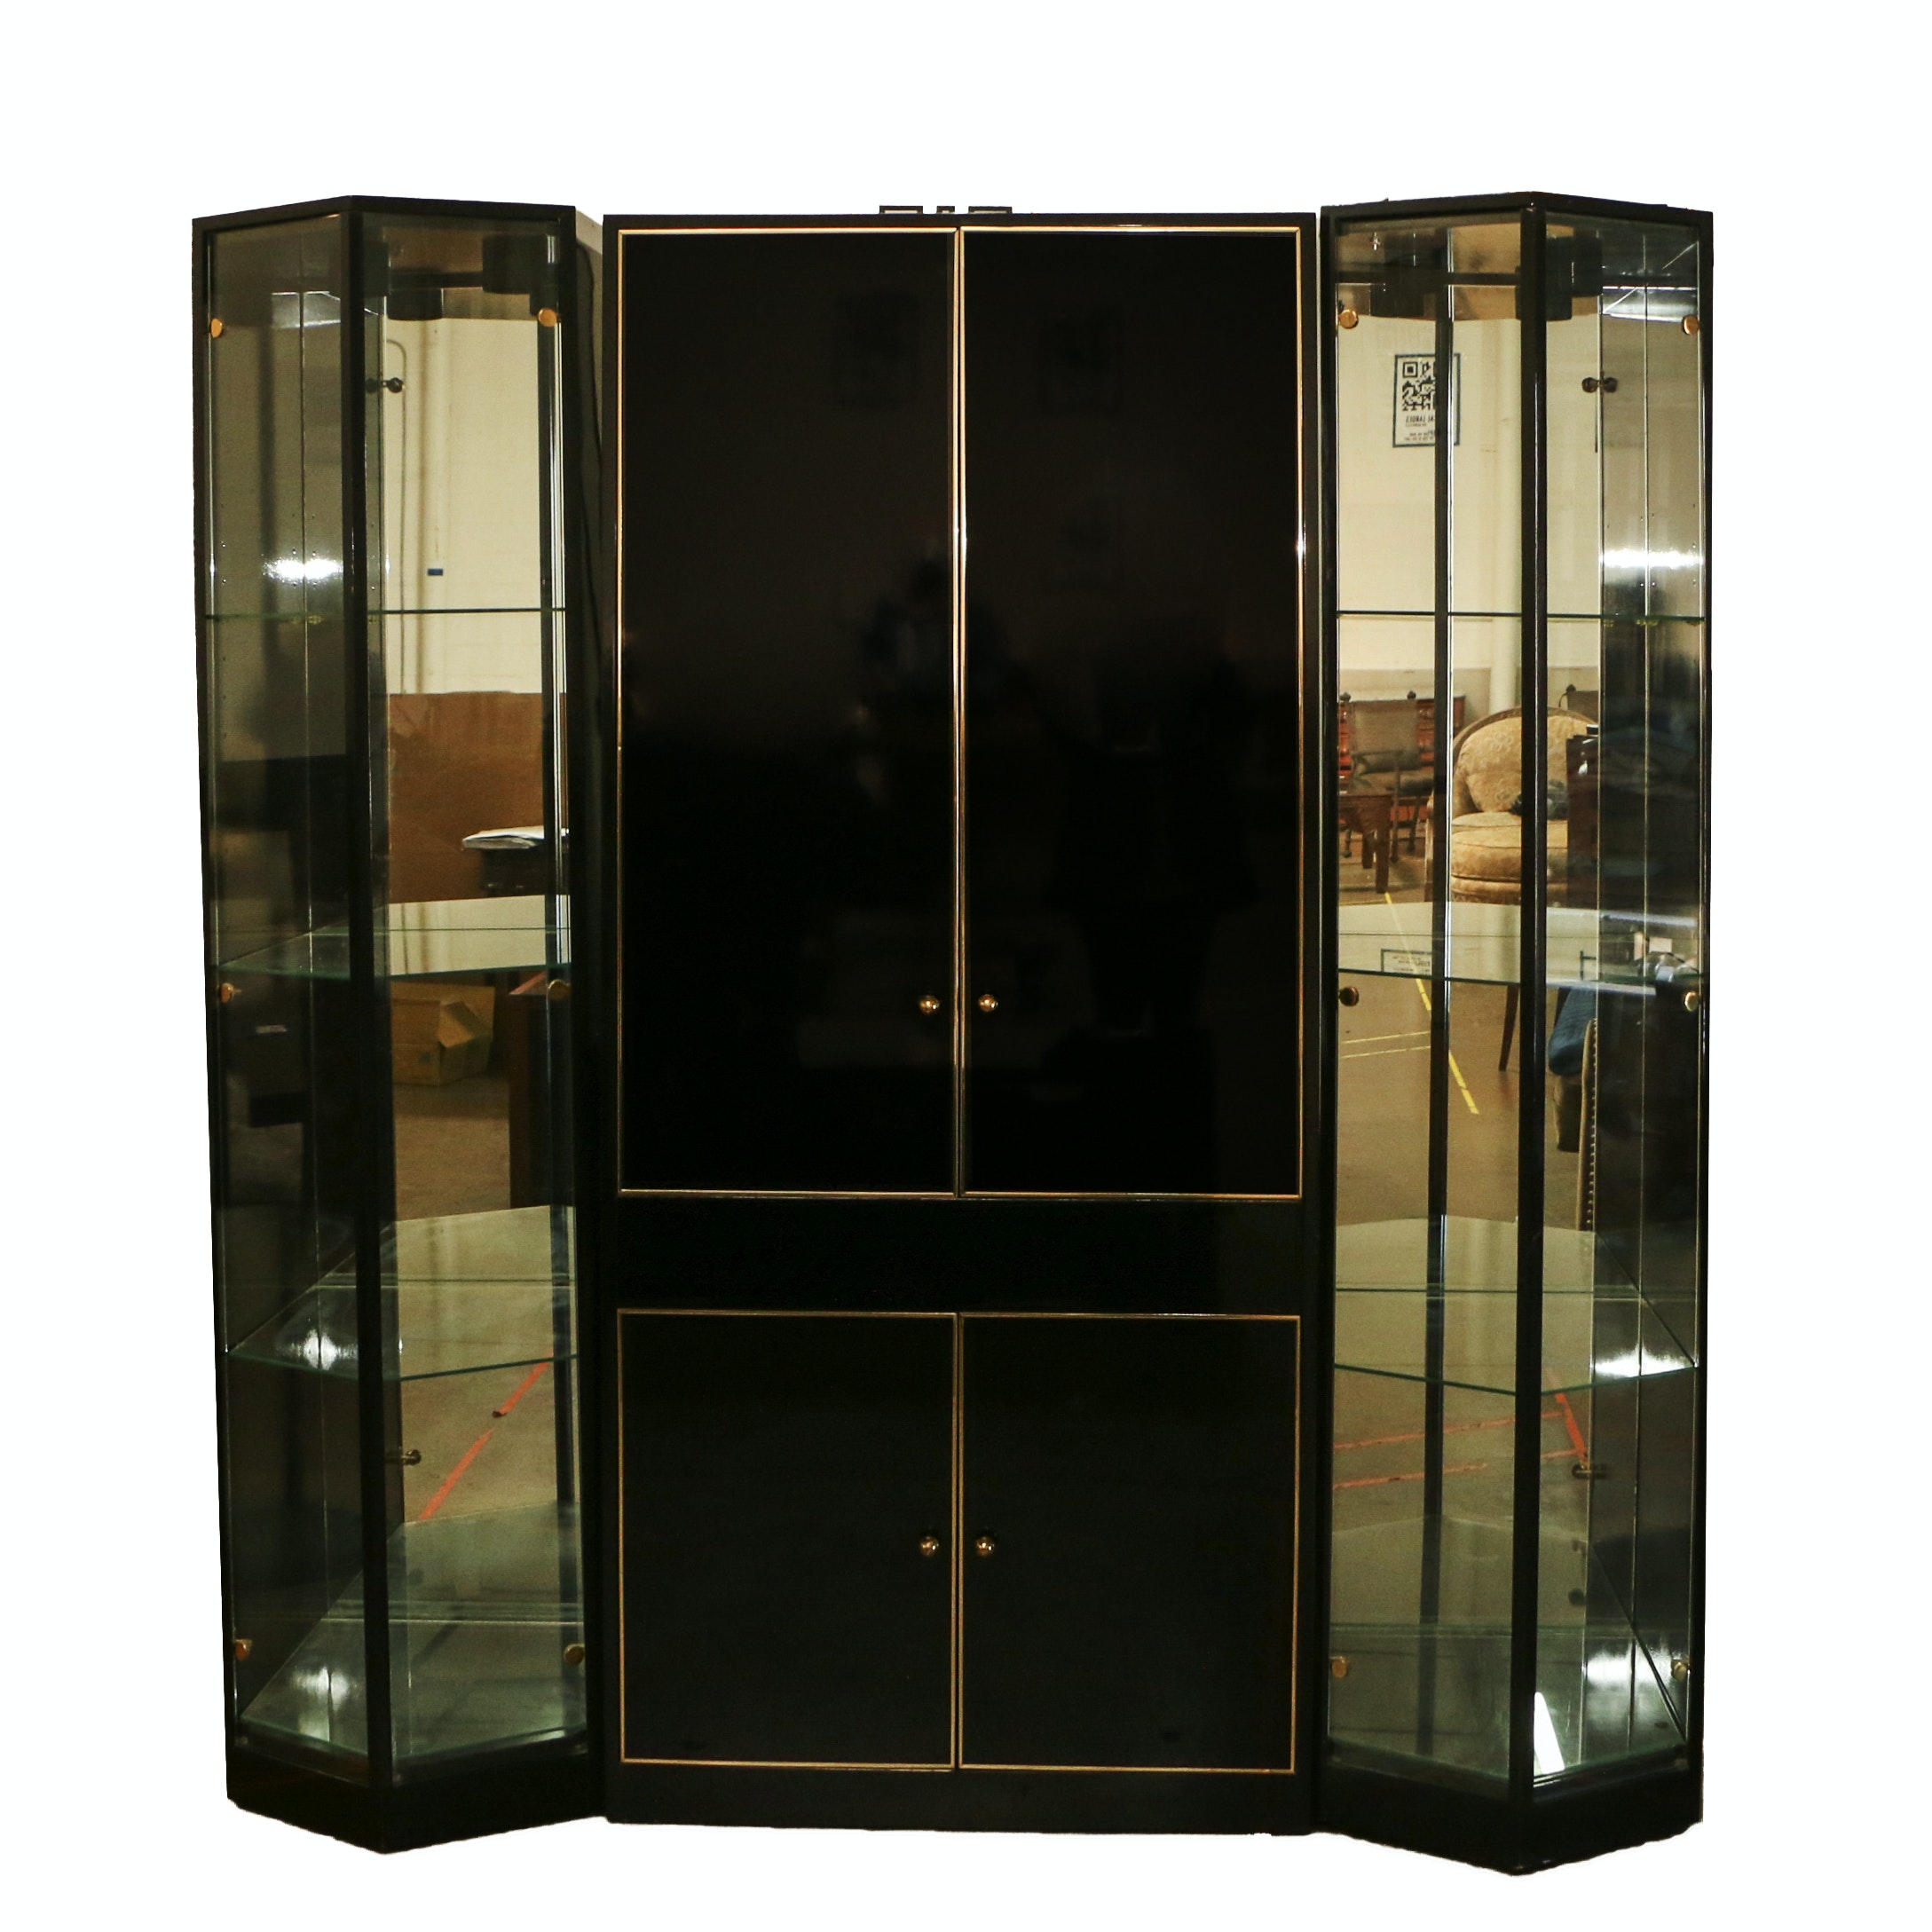 Deco Revival Wood and Mirrored China Cabinet, 20th Century